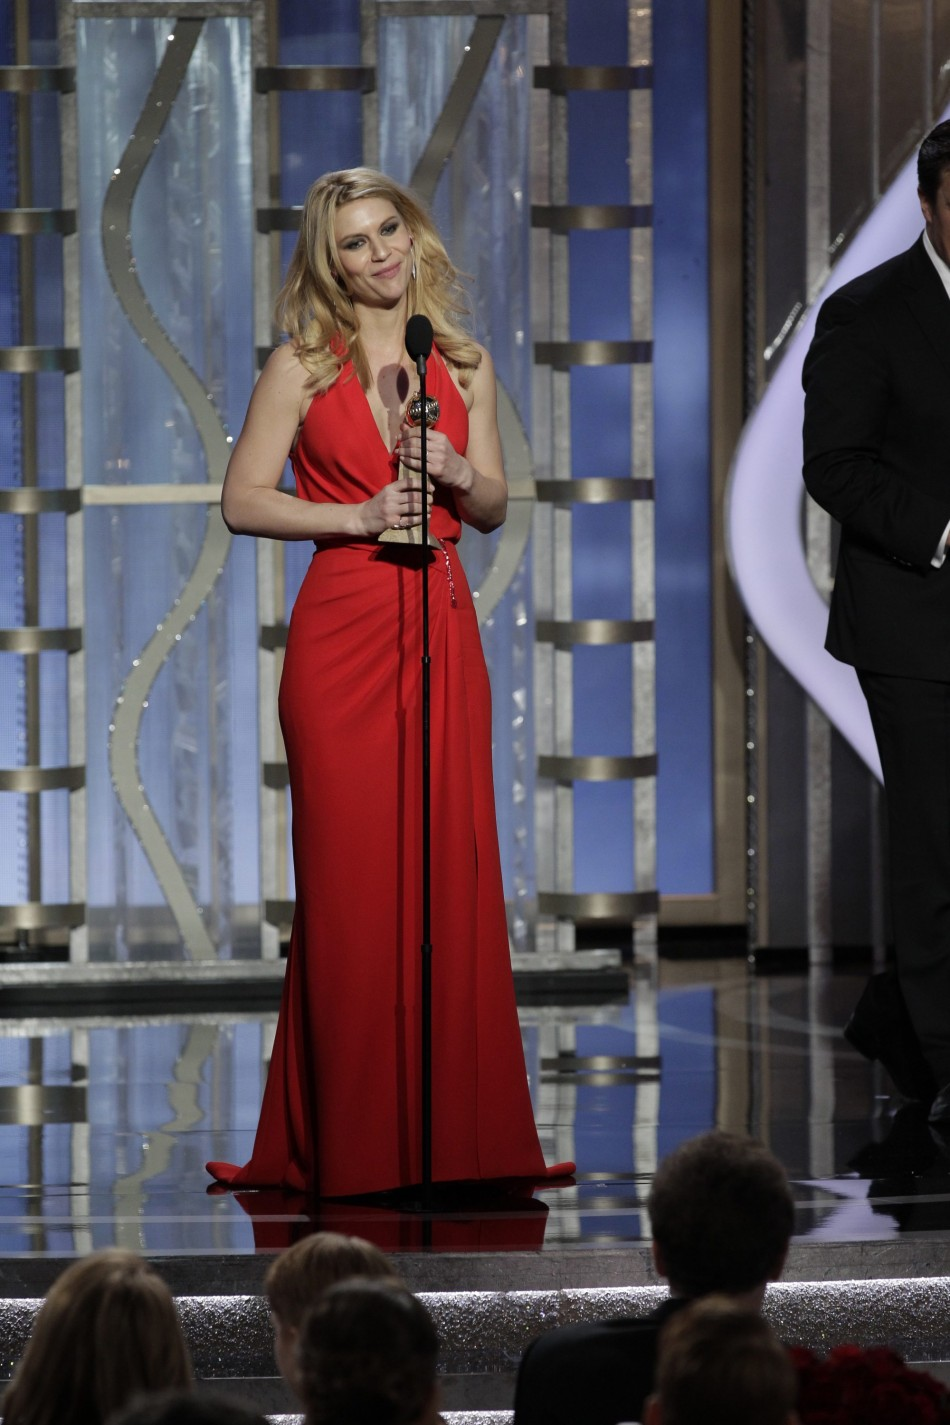 Claire Danes accepts the award for Best Actress - TV Series, Drama, for Homeland on stage at the Golden Globe Awards in Beverly Hills